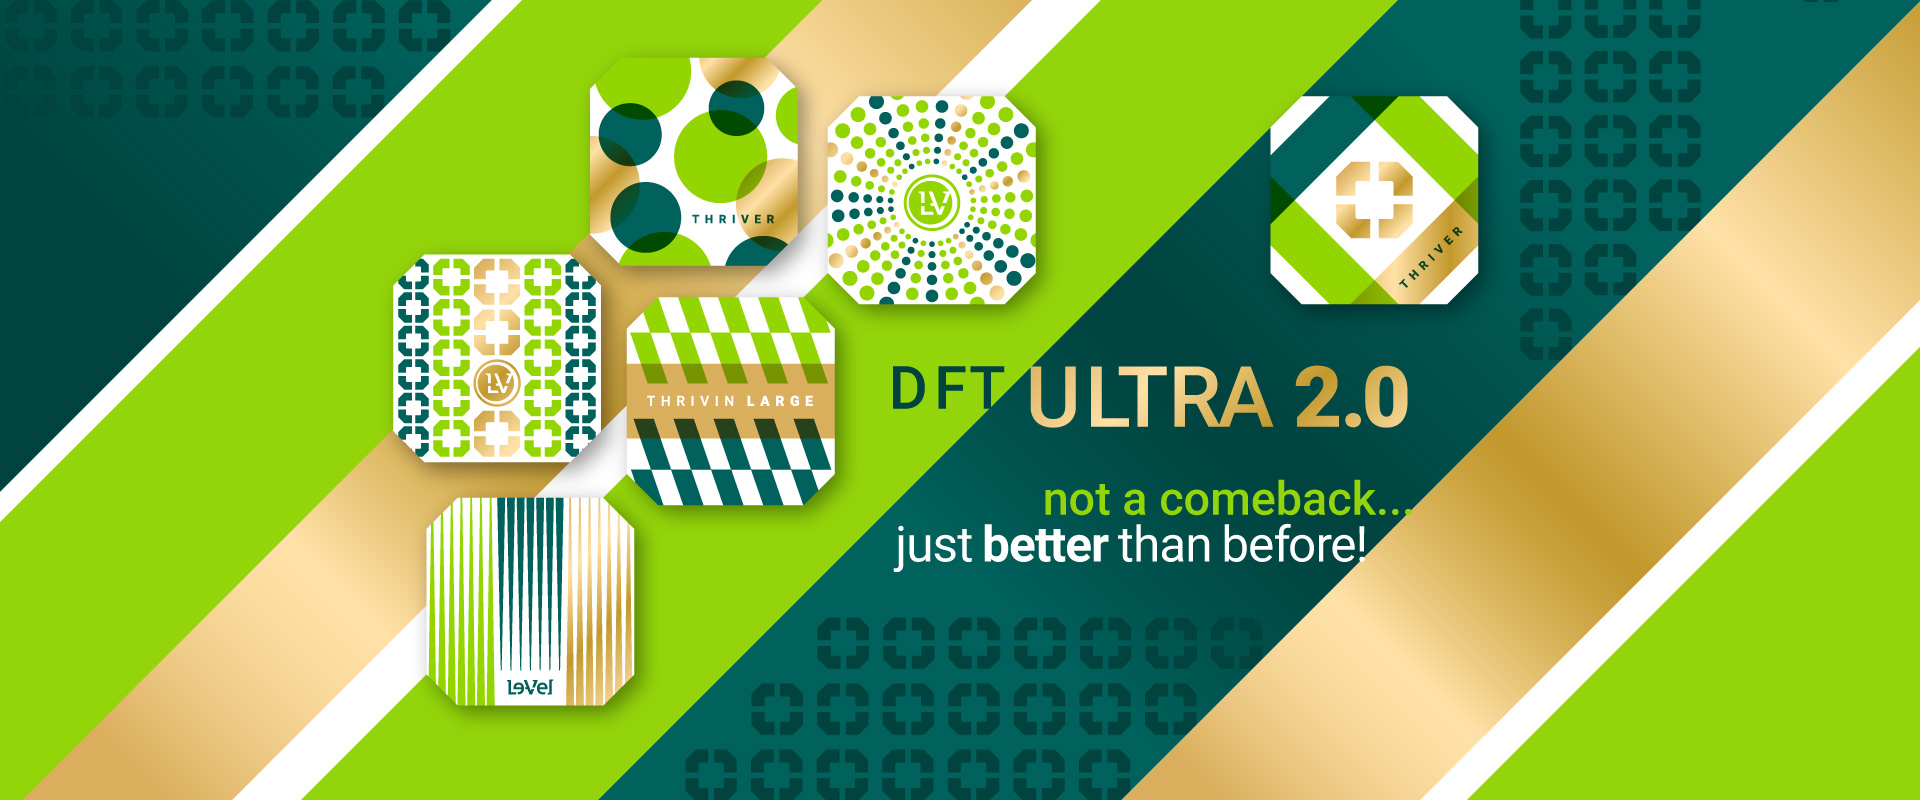 thrive dft ultra reviews